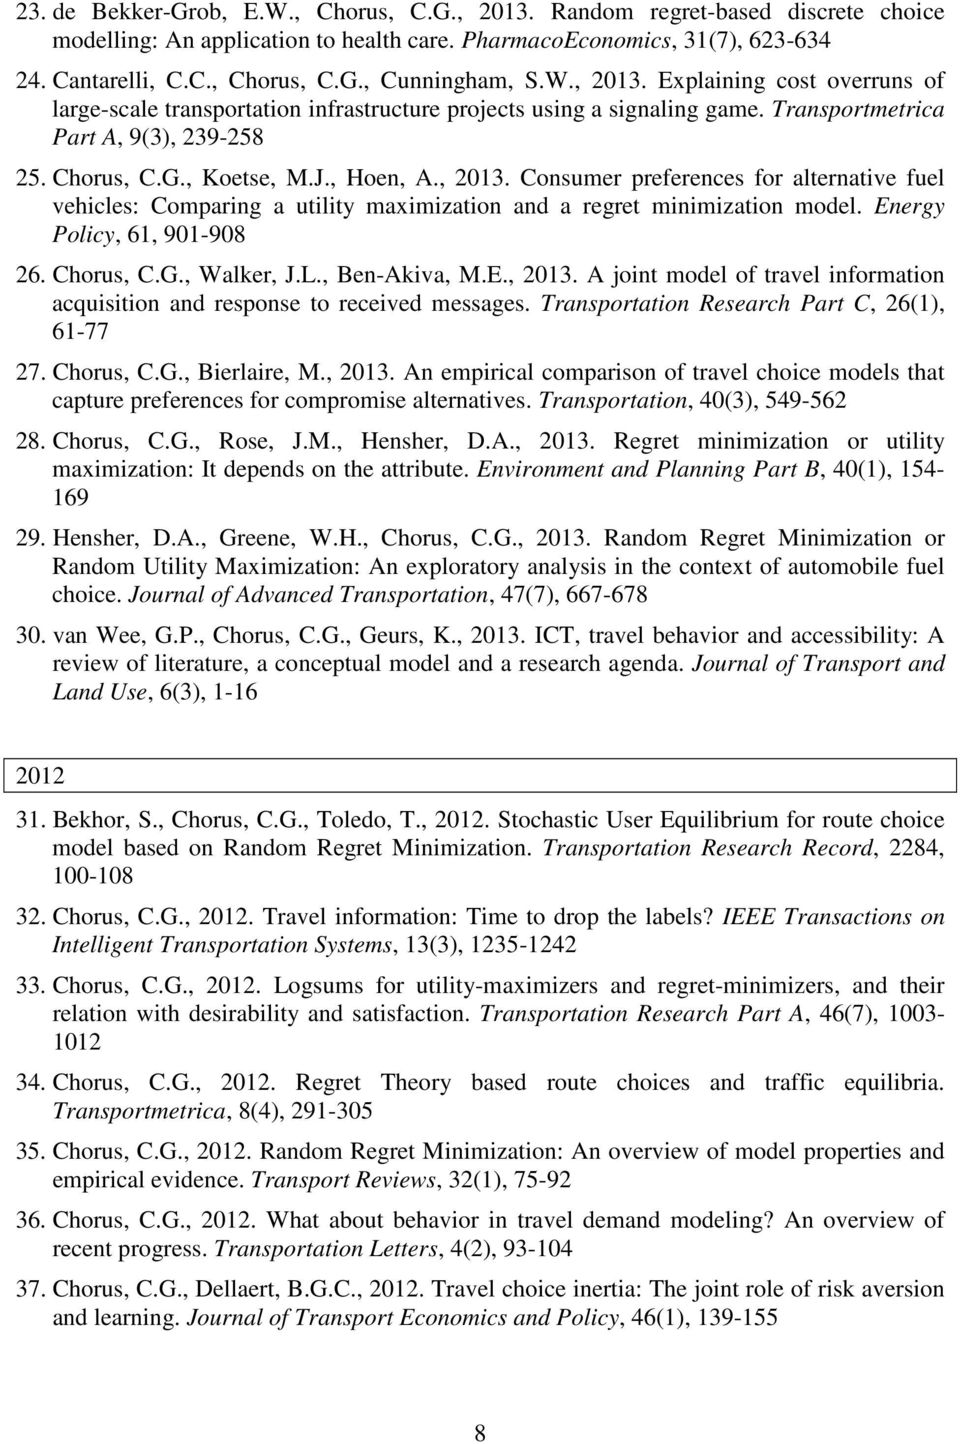 Energy Policy, 61, 901-908 26. Chorus, C.G., Walker, J.L., Ben-Akiva, M.E., 2013. A joint model of travel information acquisition and response to received messages.